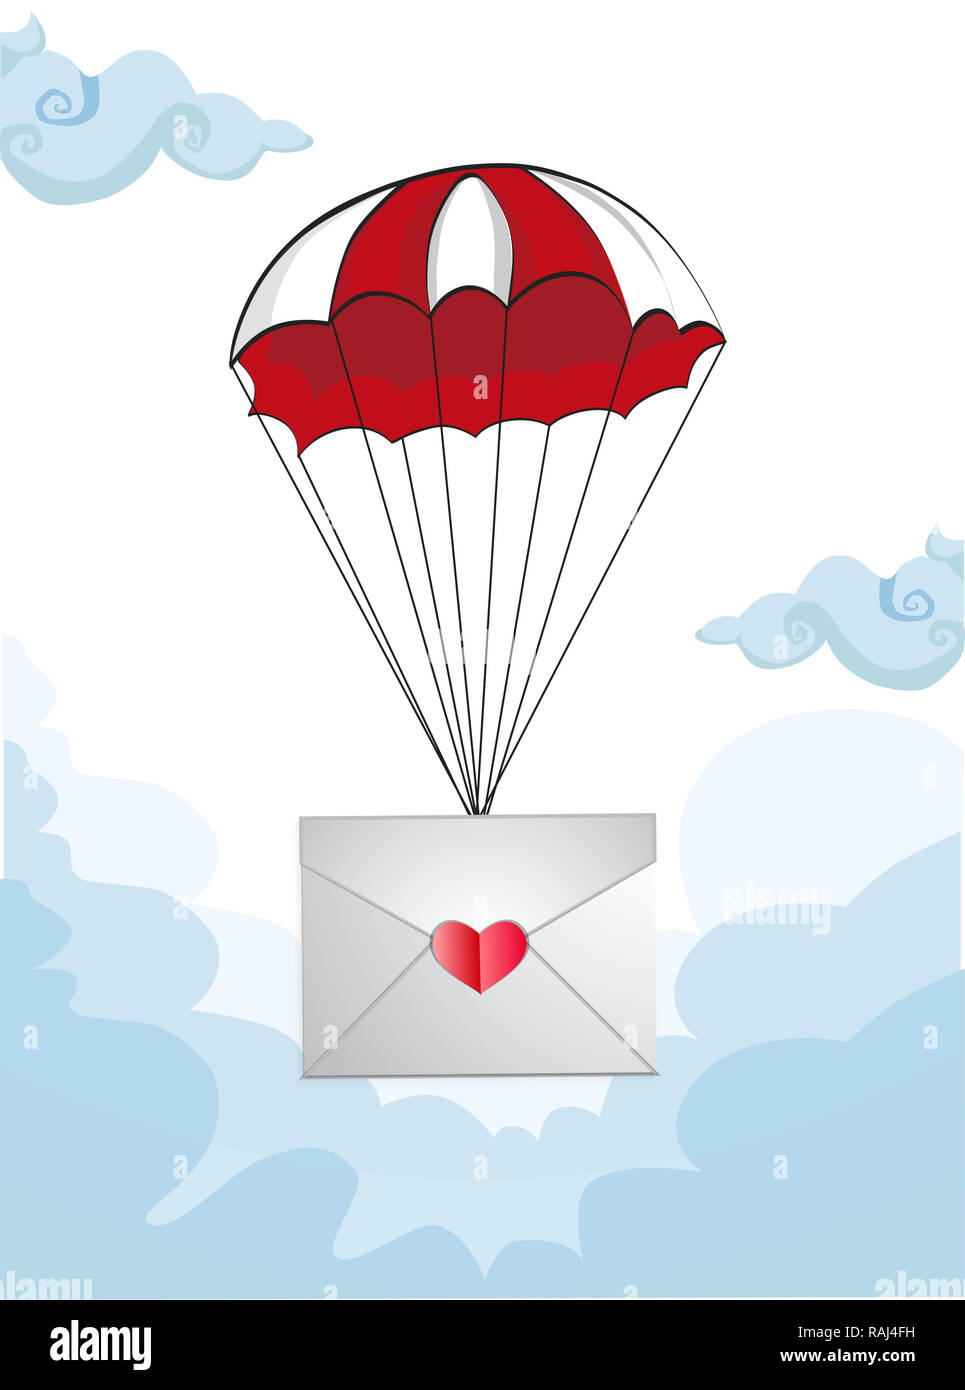 Illustration of envelope with heart stamp flying with parachute in blue sky among the clouds. Flying love letter in cartoon style. Valentine's Day car - Stock Image